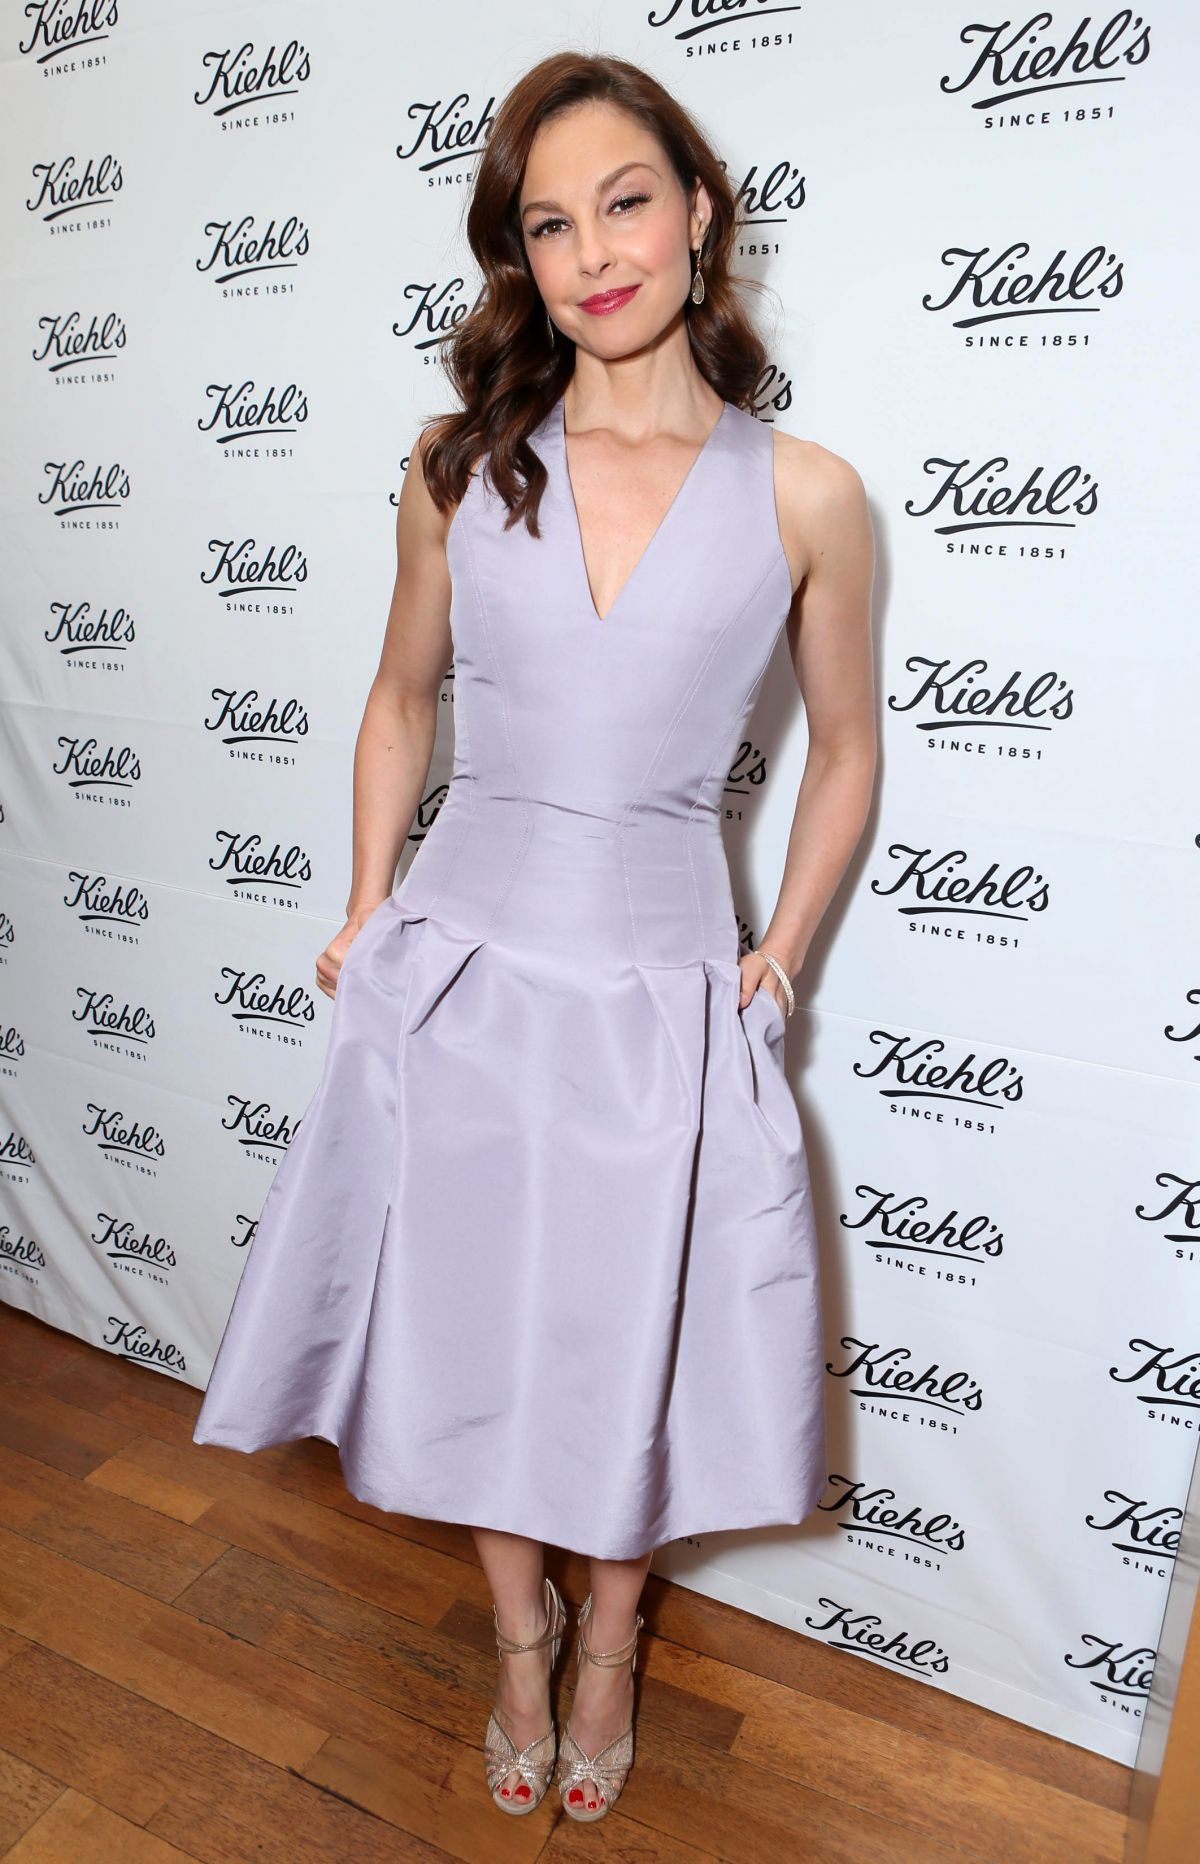 ASHLEY JUDD at Kiehl's Recycle Across America Benefit Event in Santa Monica